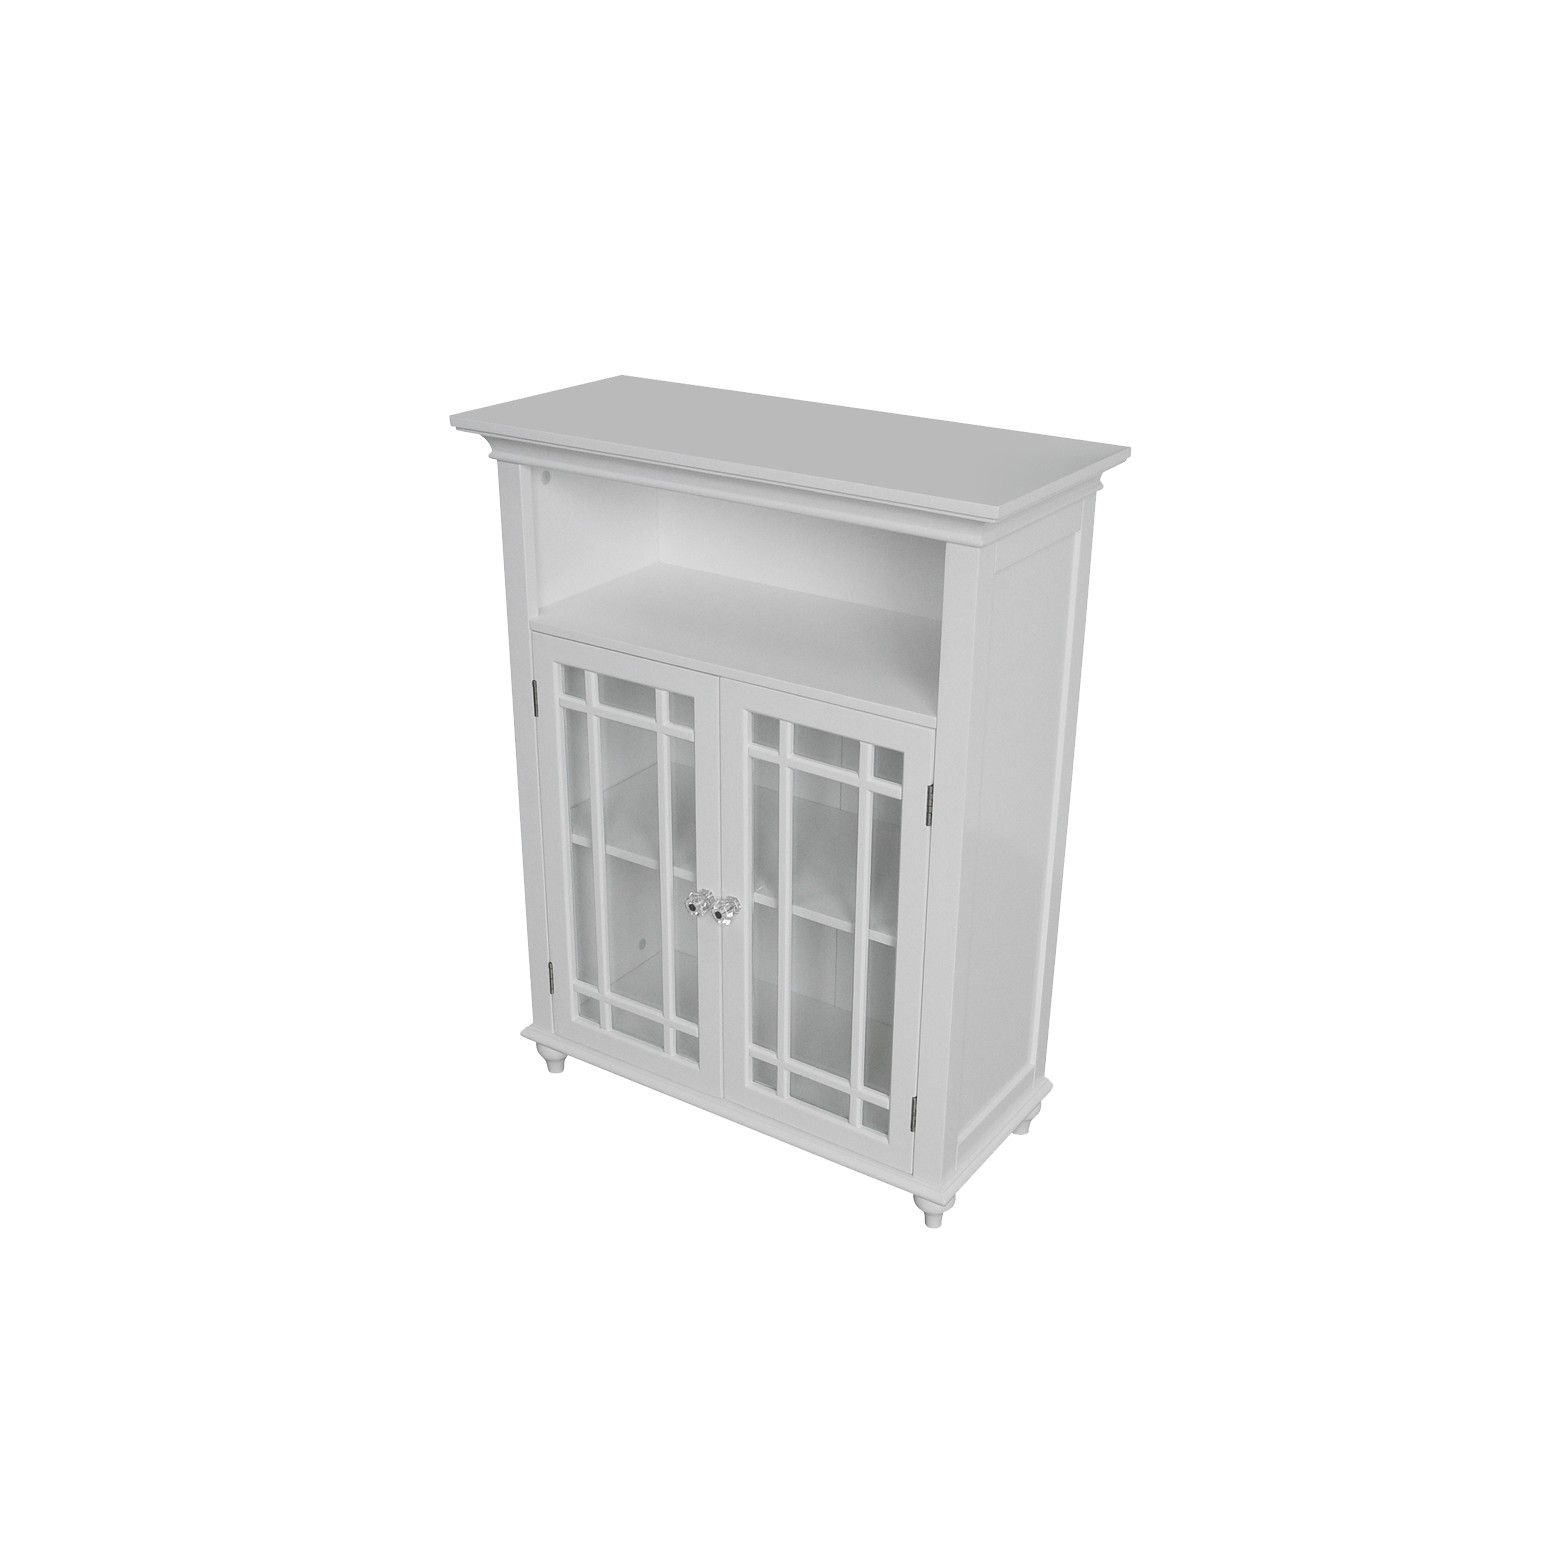 The Elegant Home Fashions Neal 2 Door Floor Cabinet White Lets You Add Some Extra Storage Space In Your Home With Two Doors For Stori Bathroom Floor Cabinets Bathroom Furniture Storage Cabinets